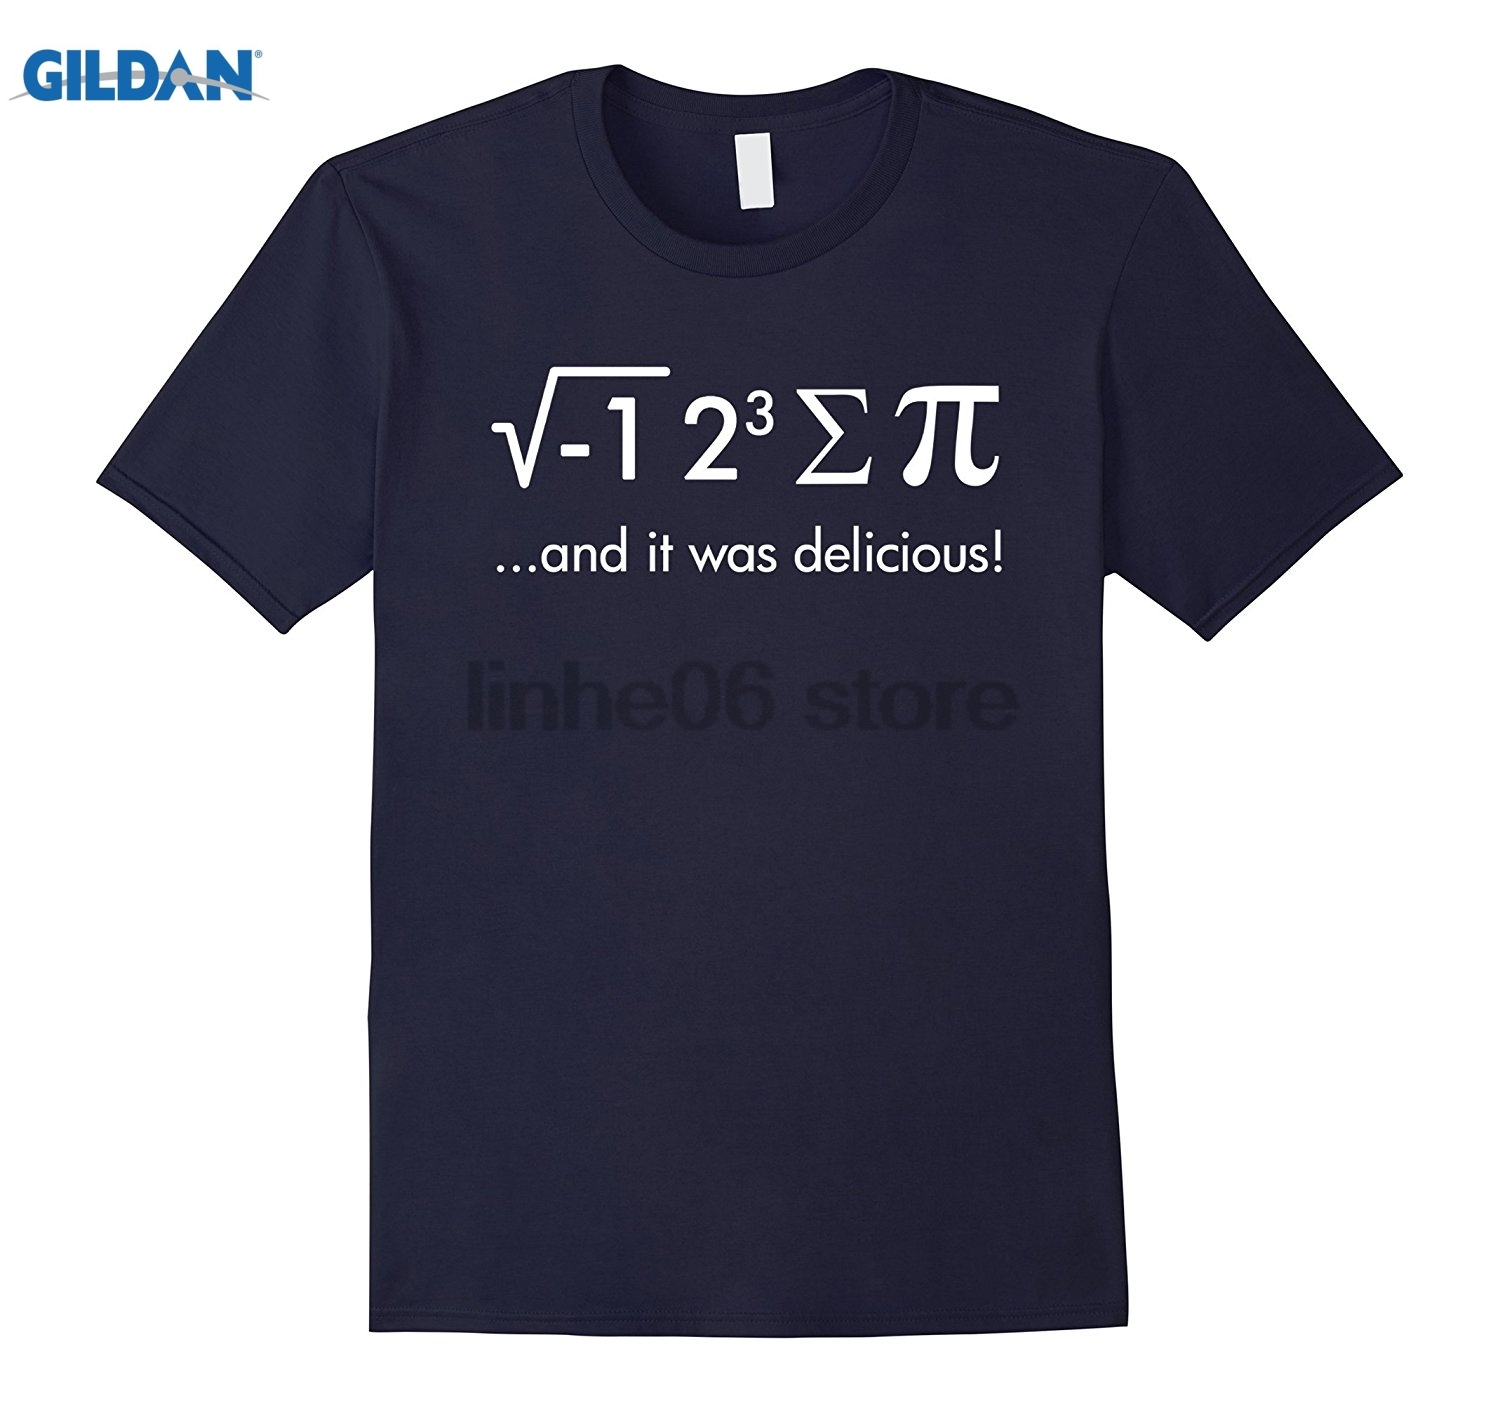 GILDAN I Ate Some Pi And It Was Delicious! T-Shirt Funny Math Shirt